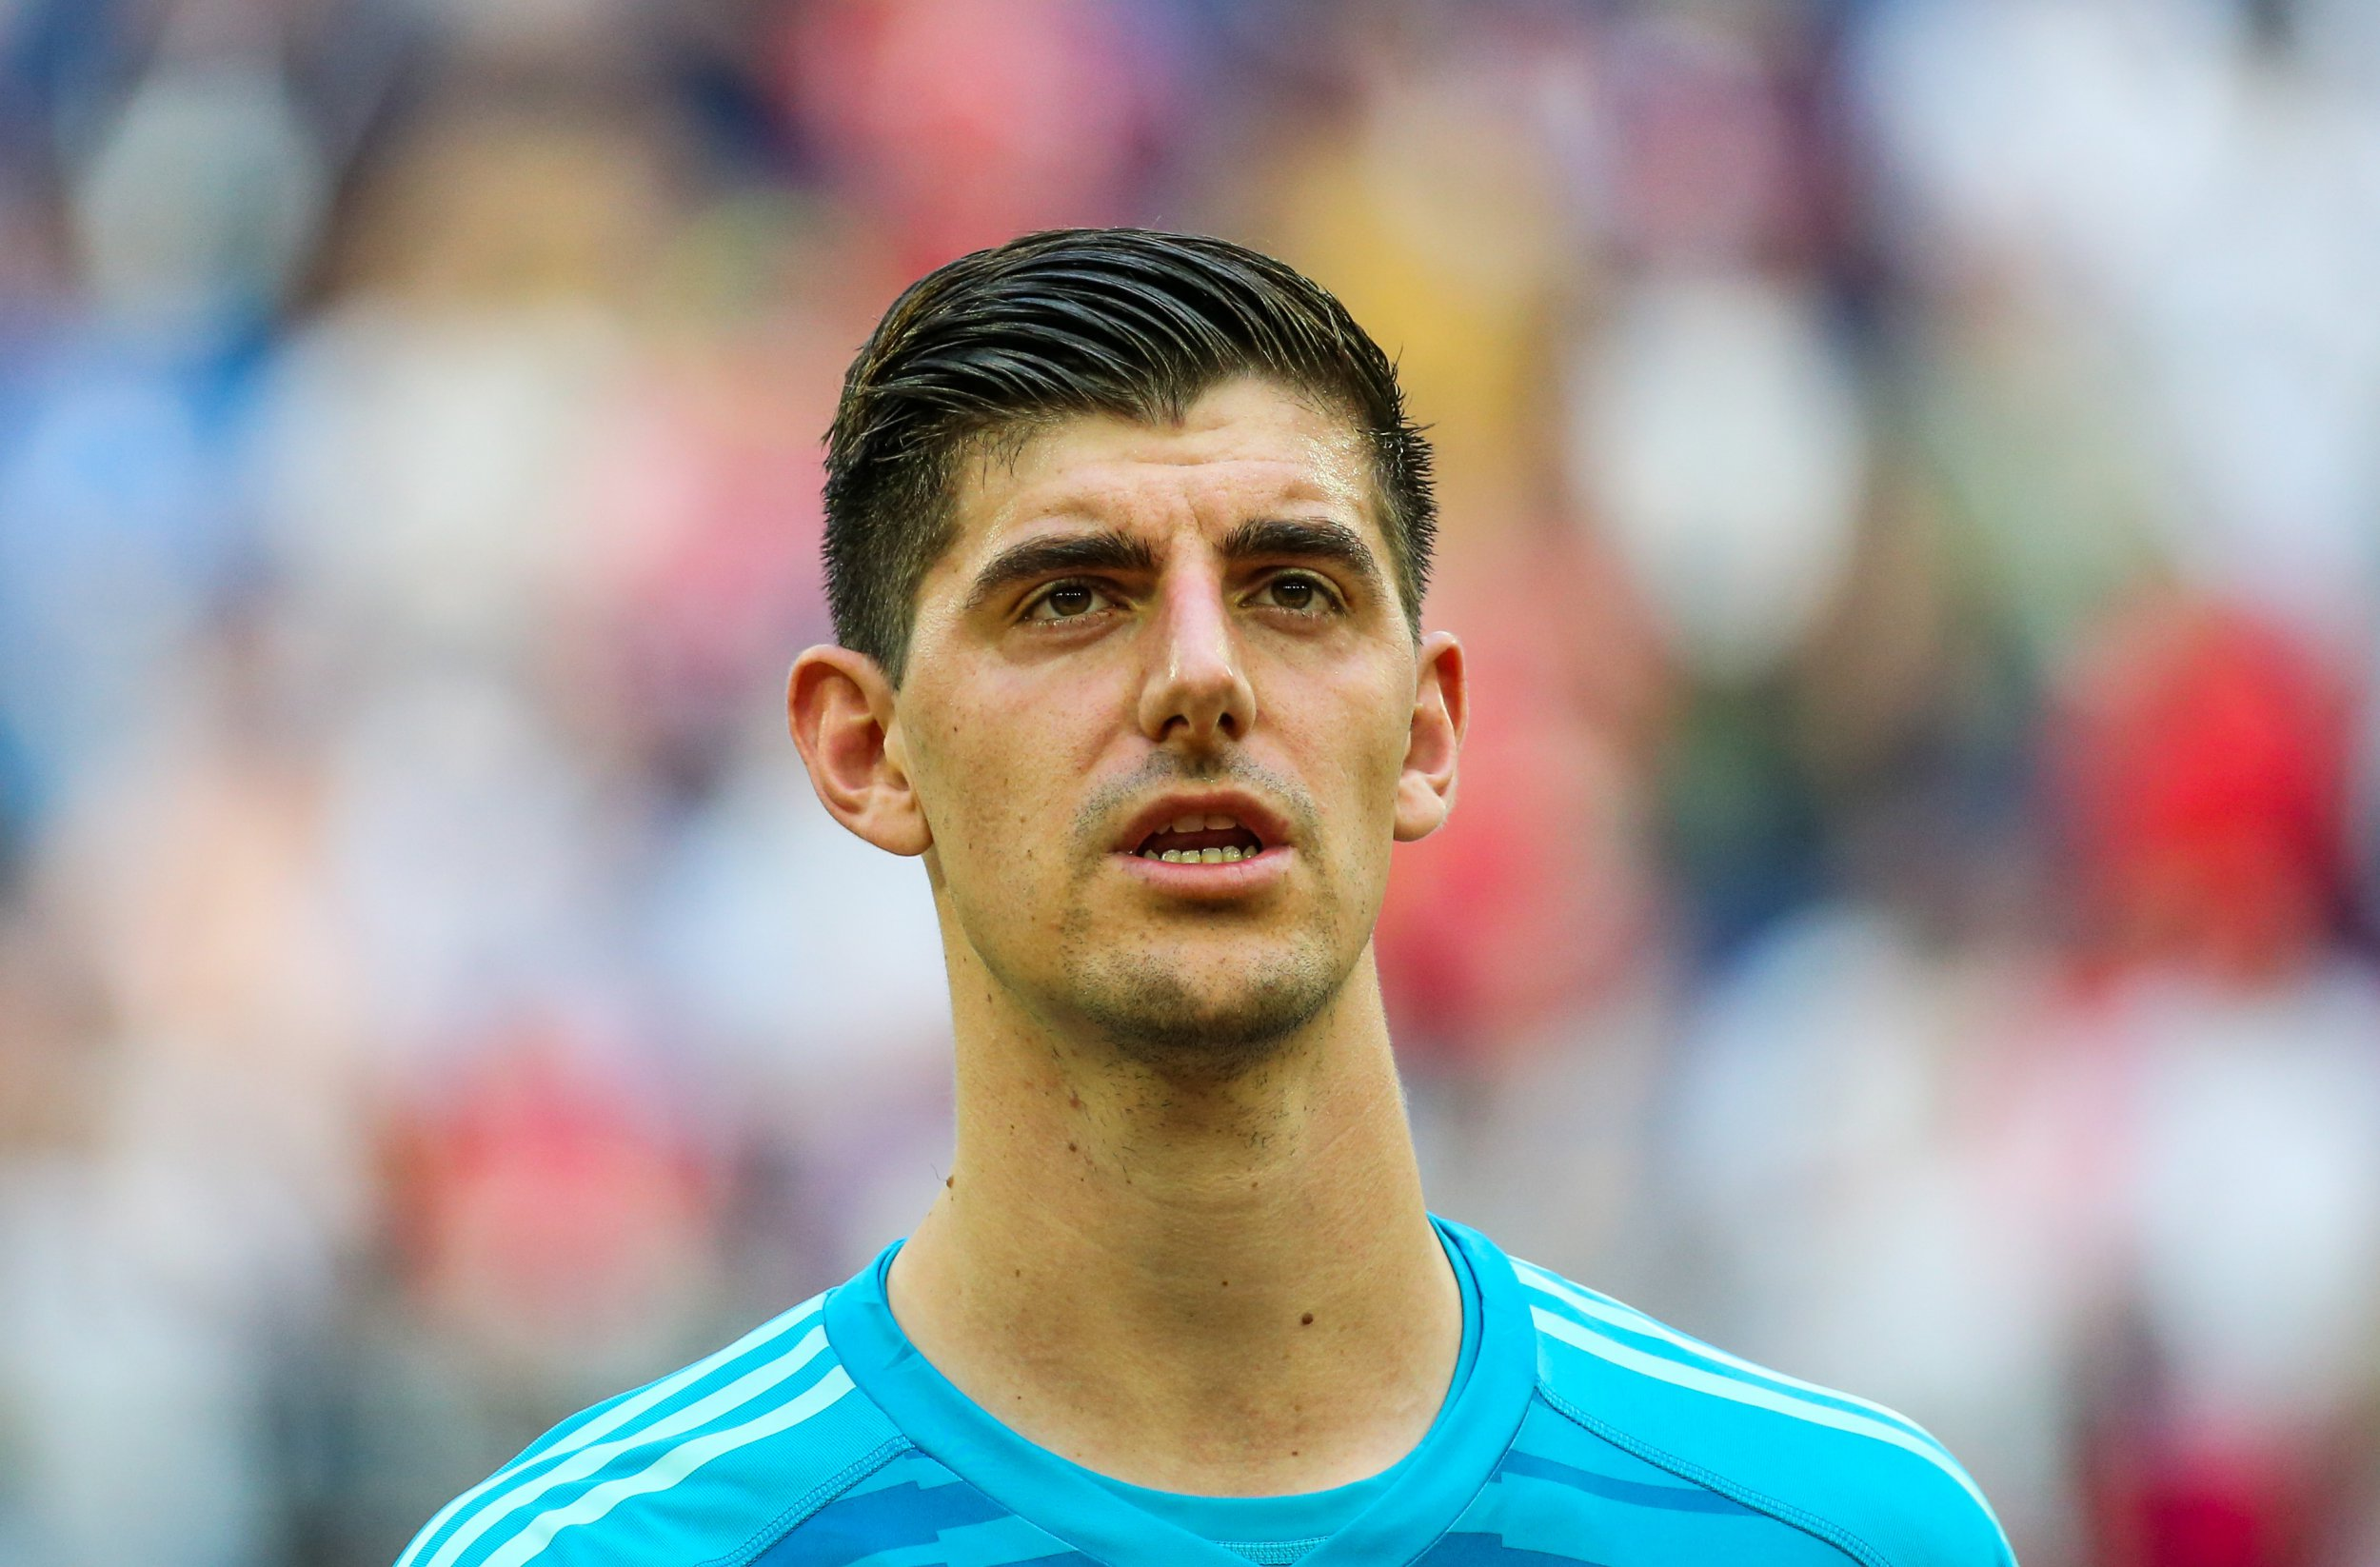 Chelsea agree £31m transfer fee with Real Madrid for Thibaut Courtois